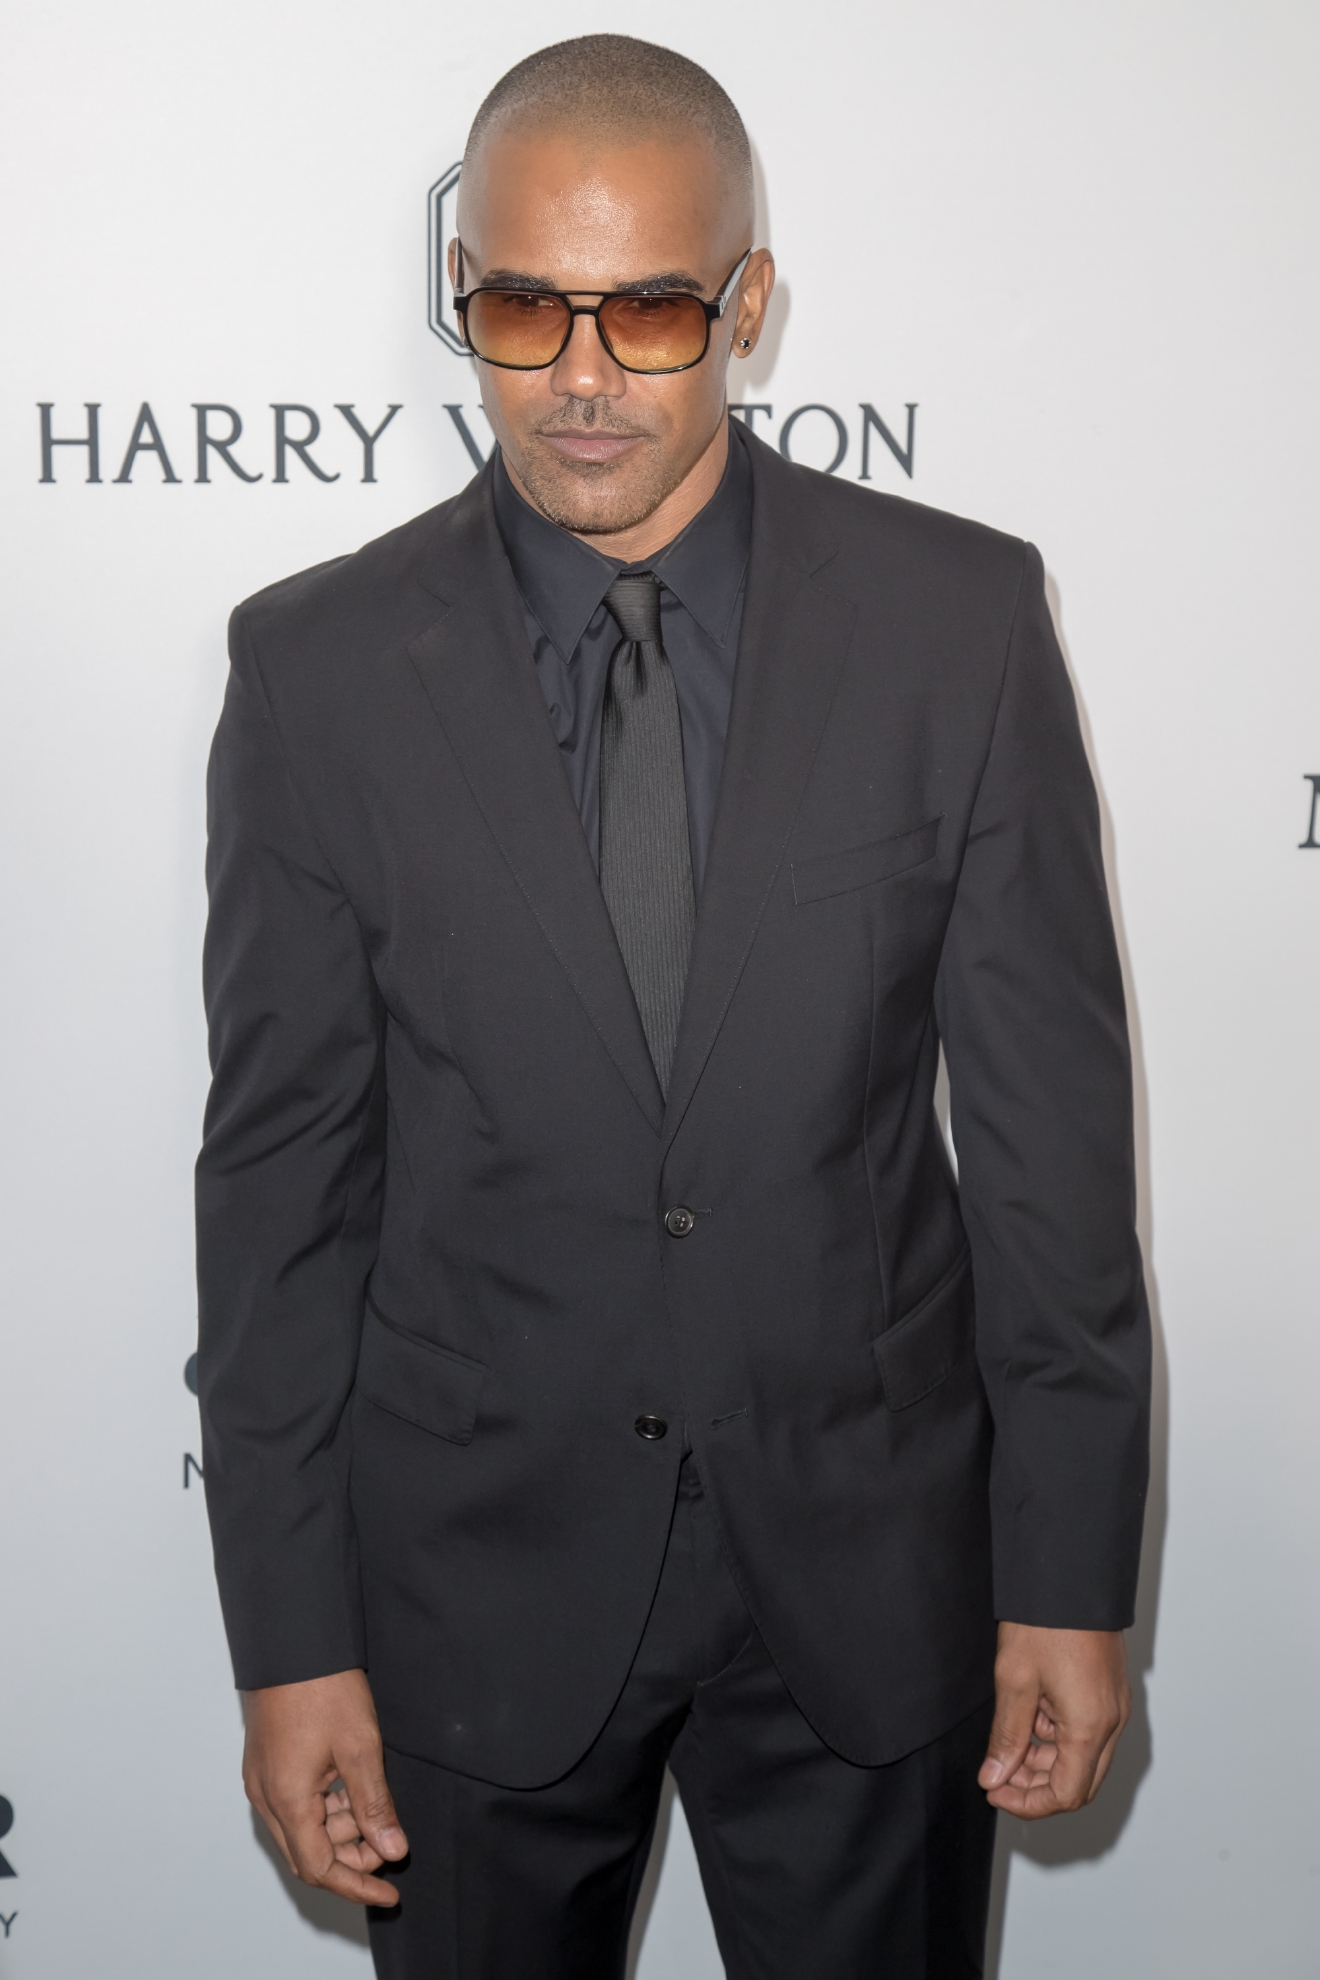 amfAR's Inspiration Gala Los Angeles at Milk Studios - Arrivals                                    Featuring: Shemar Moore                  Where: Los Angeles, California, United States                  When: 27 Oct 2016                  Credit: Michael Boardman/WENN.com